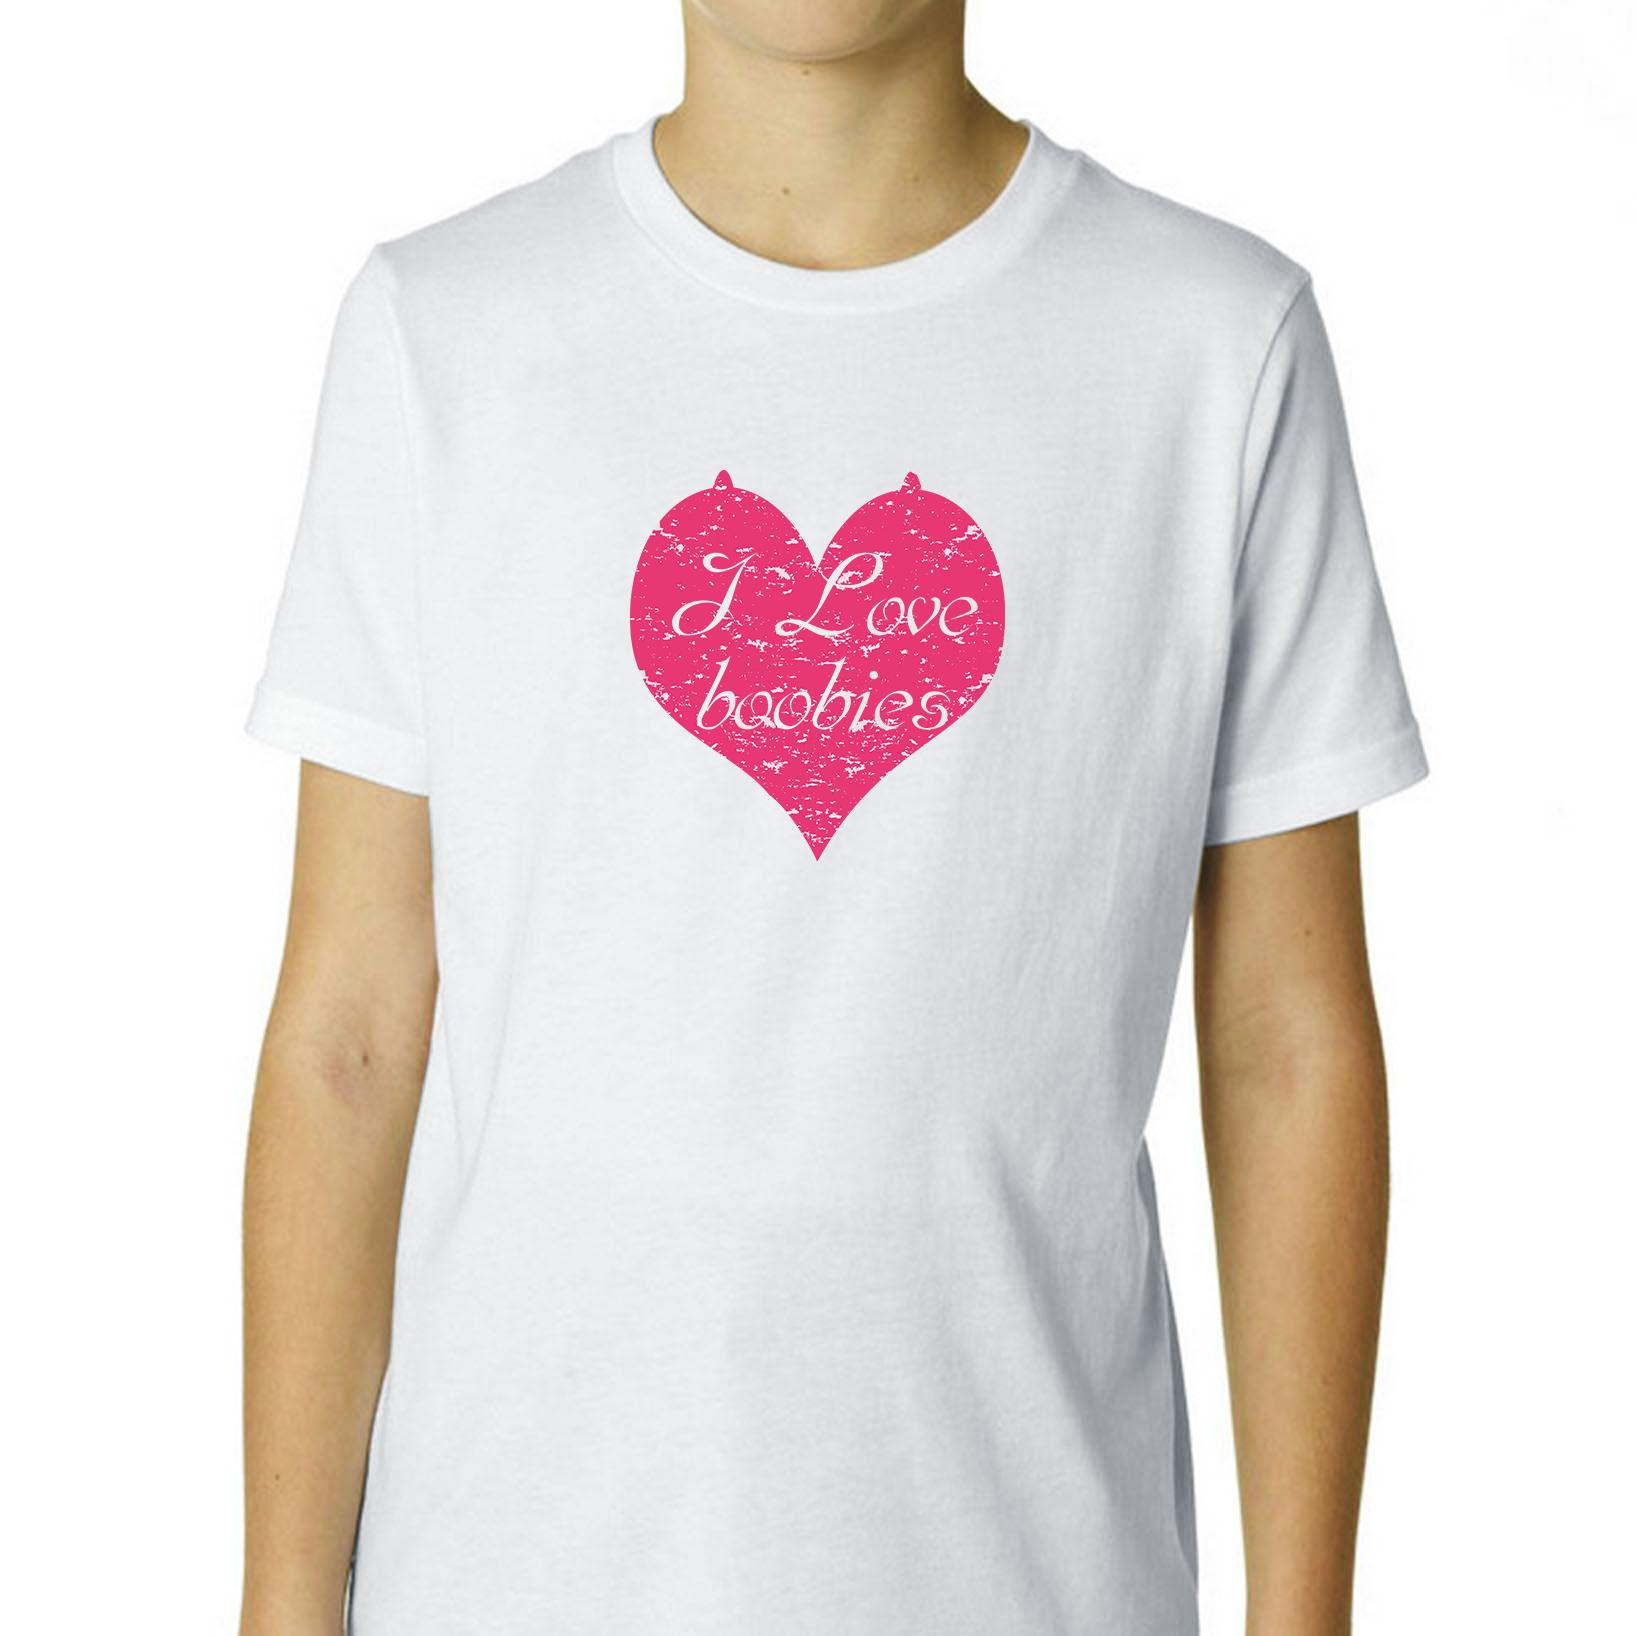 I Love Boobies - Pink Heart with Nipples Boy's Cotton Youth T-Shirt